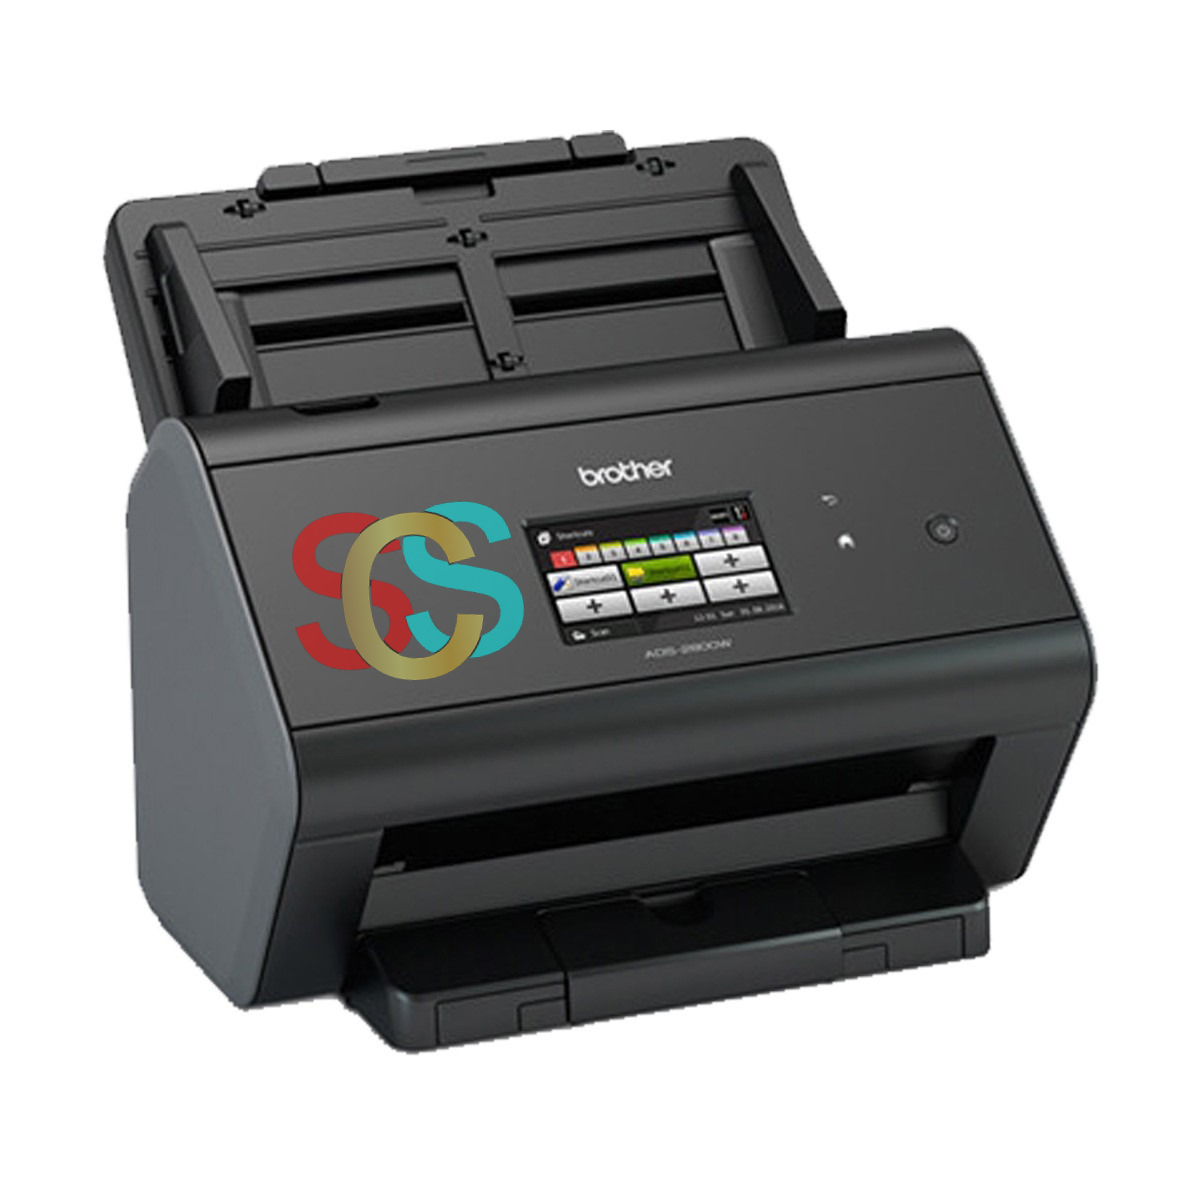 Brother ADS-2800W Scanner with ADF